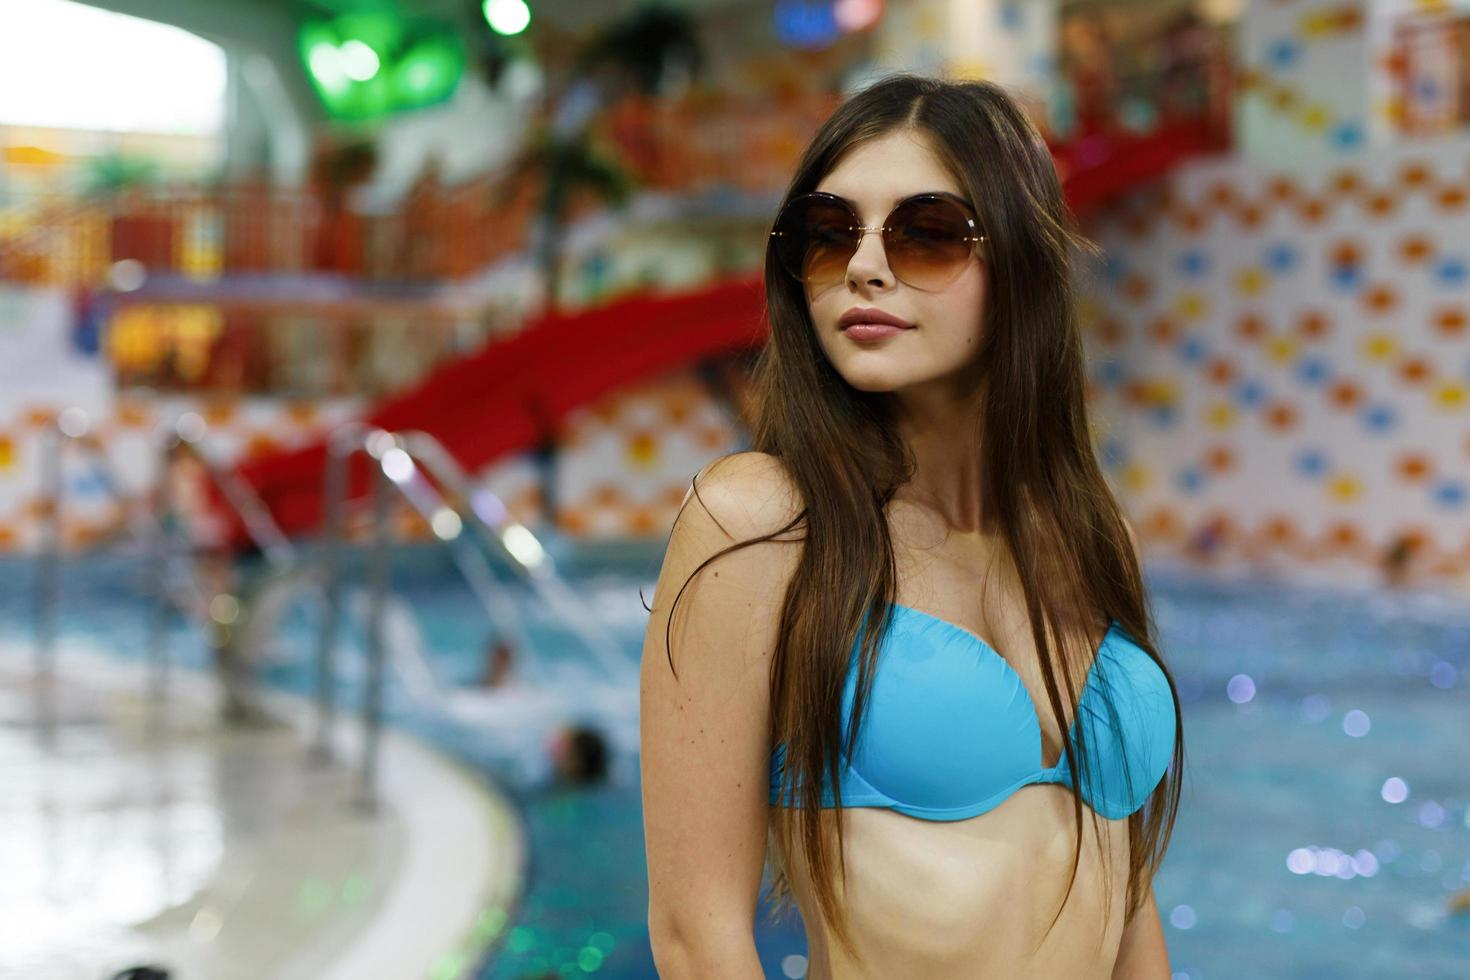 The girl stands near swimming pool photo